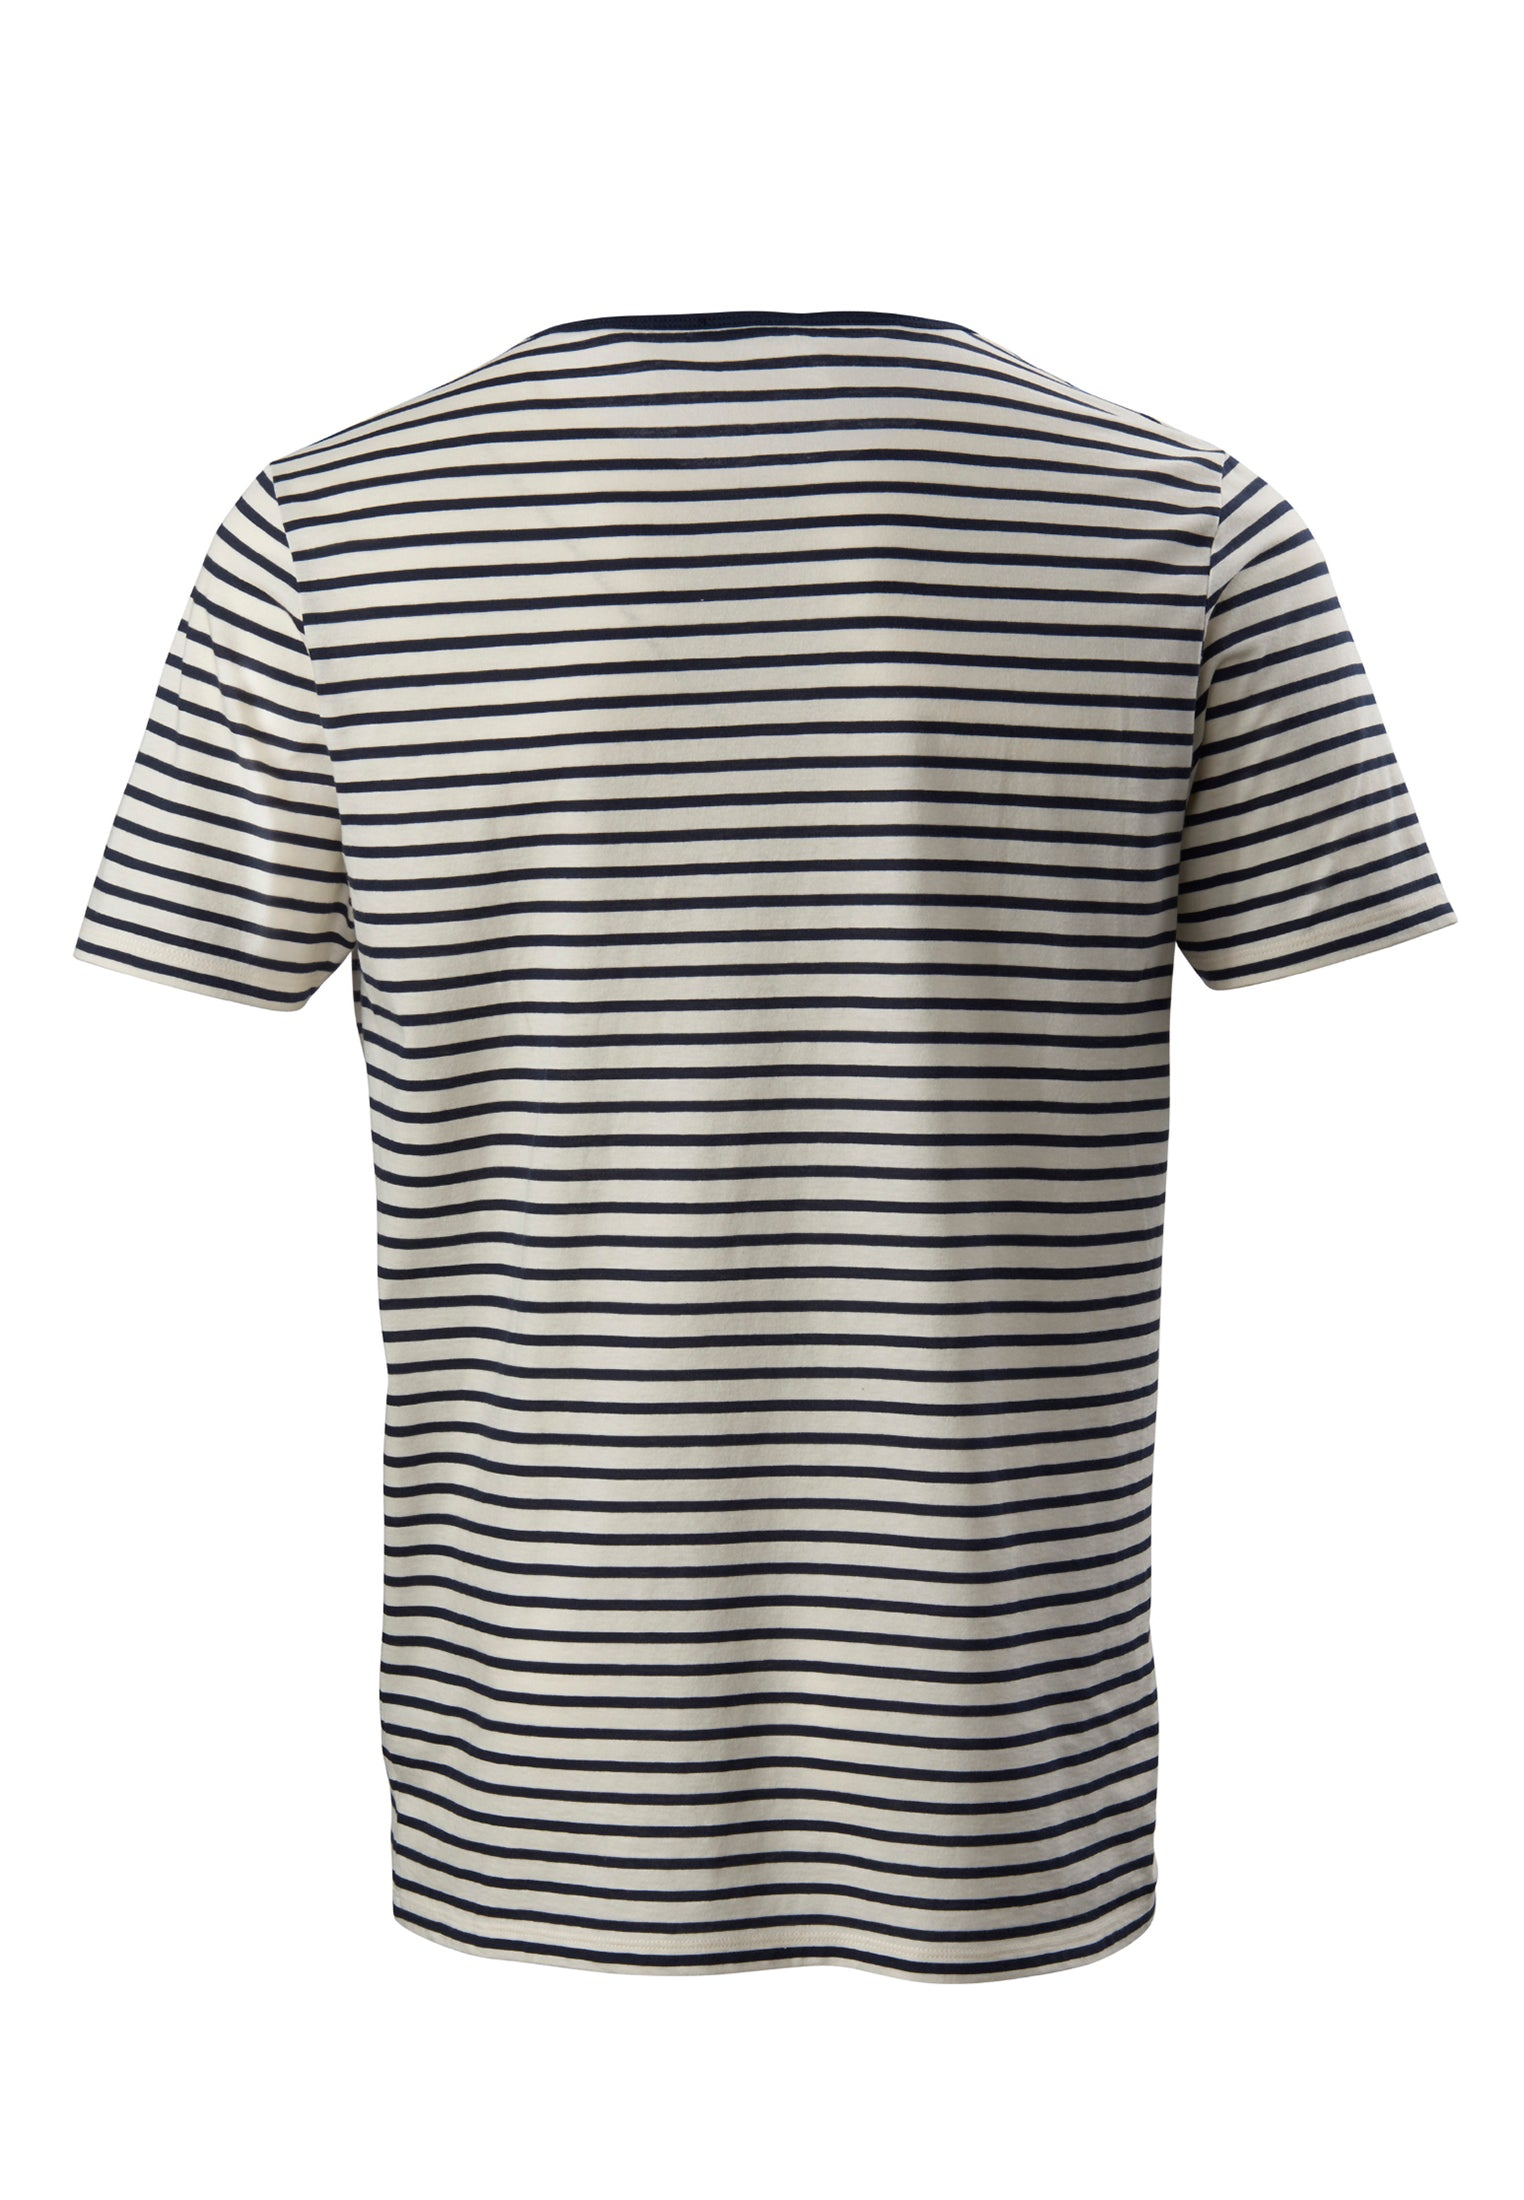 The Round Neck T-Shirt Stripes Navy/White